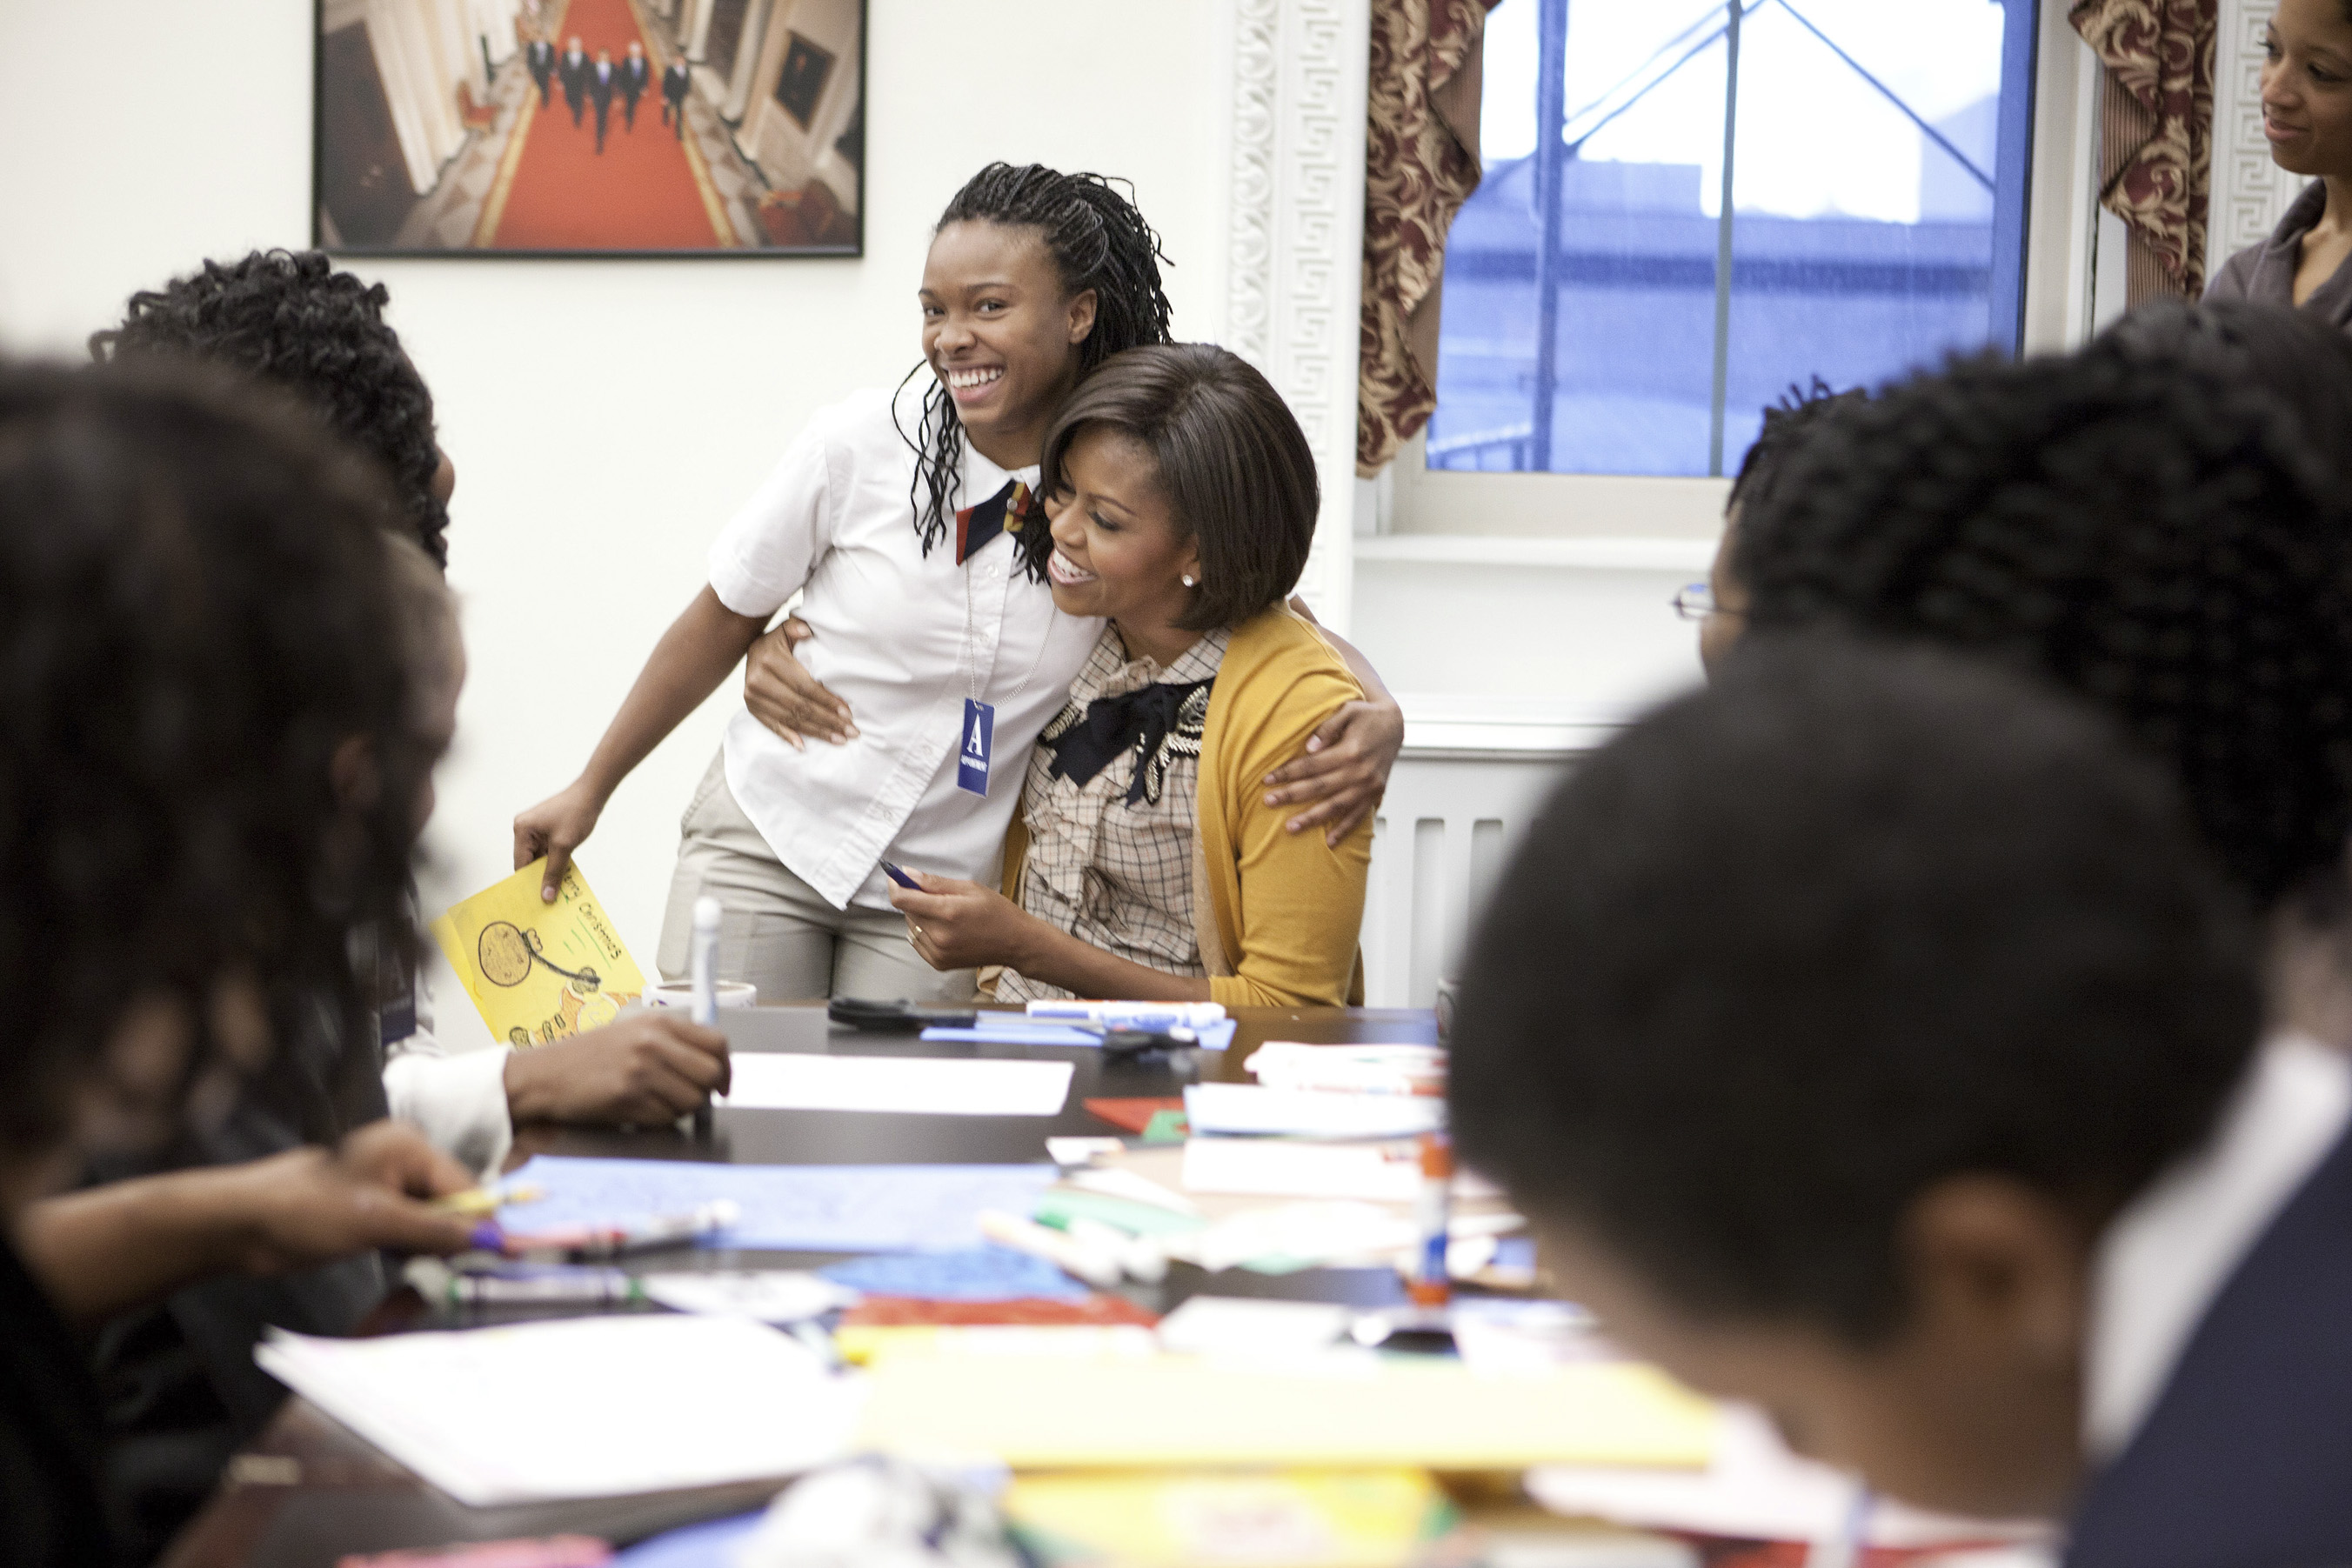 First Lady Michelle Obama at Girls Mentoring event